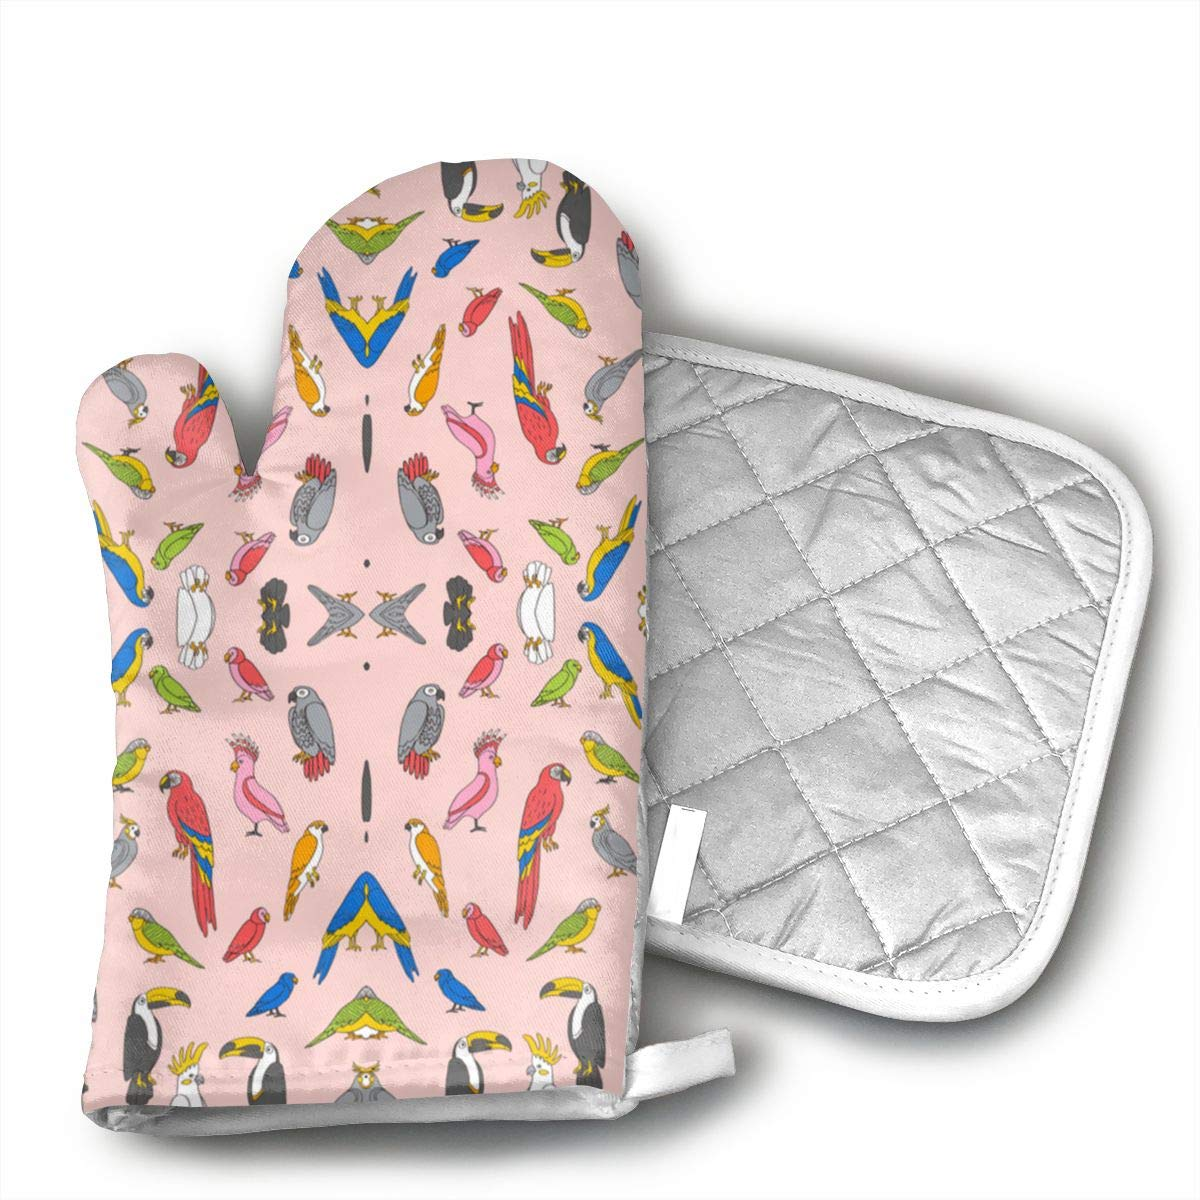 Wiqo9 Arrot Tropical Rainforest Bird Fabric Parrots Blu Oven Mitts and Pot Holders Kitchen Mitten Cooking Gloves,Cooking, Baking, BBQ.